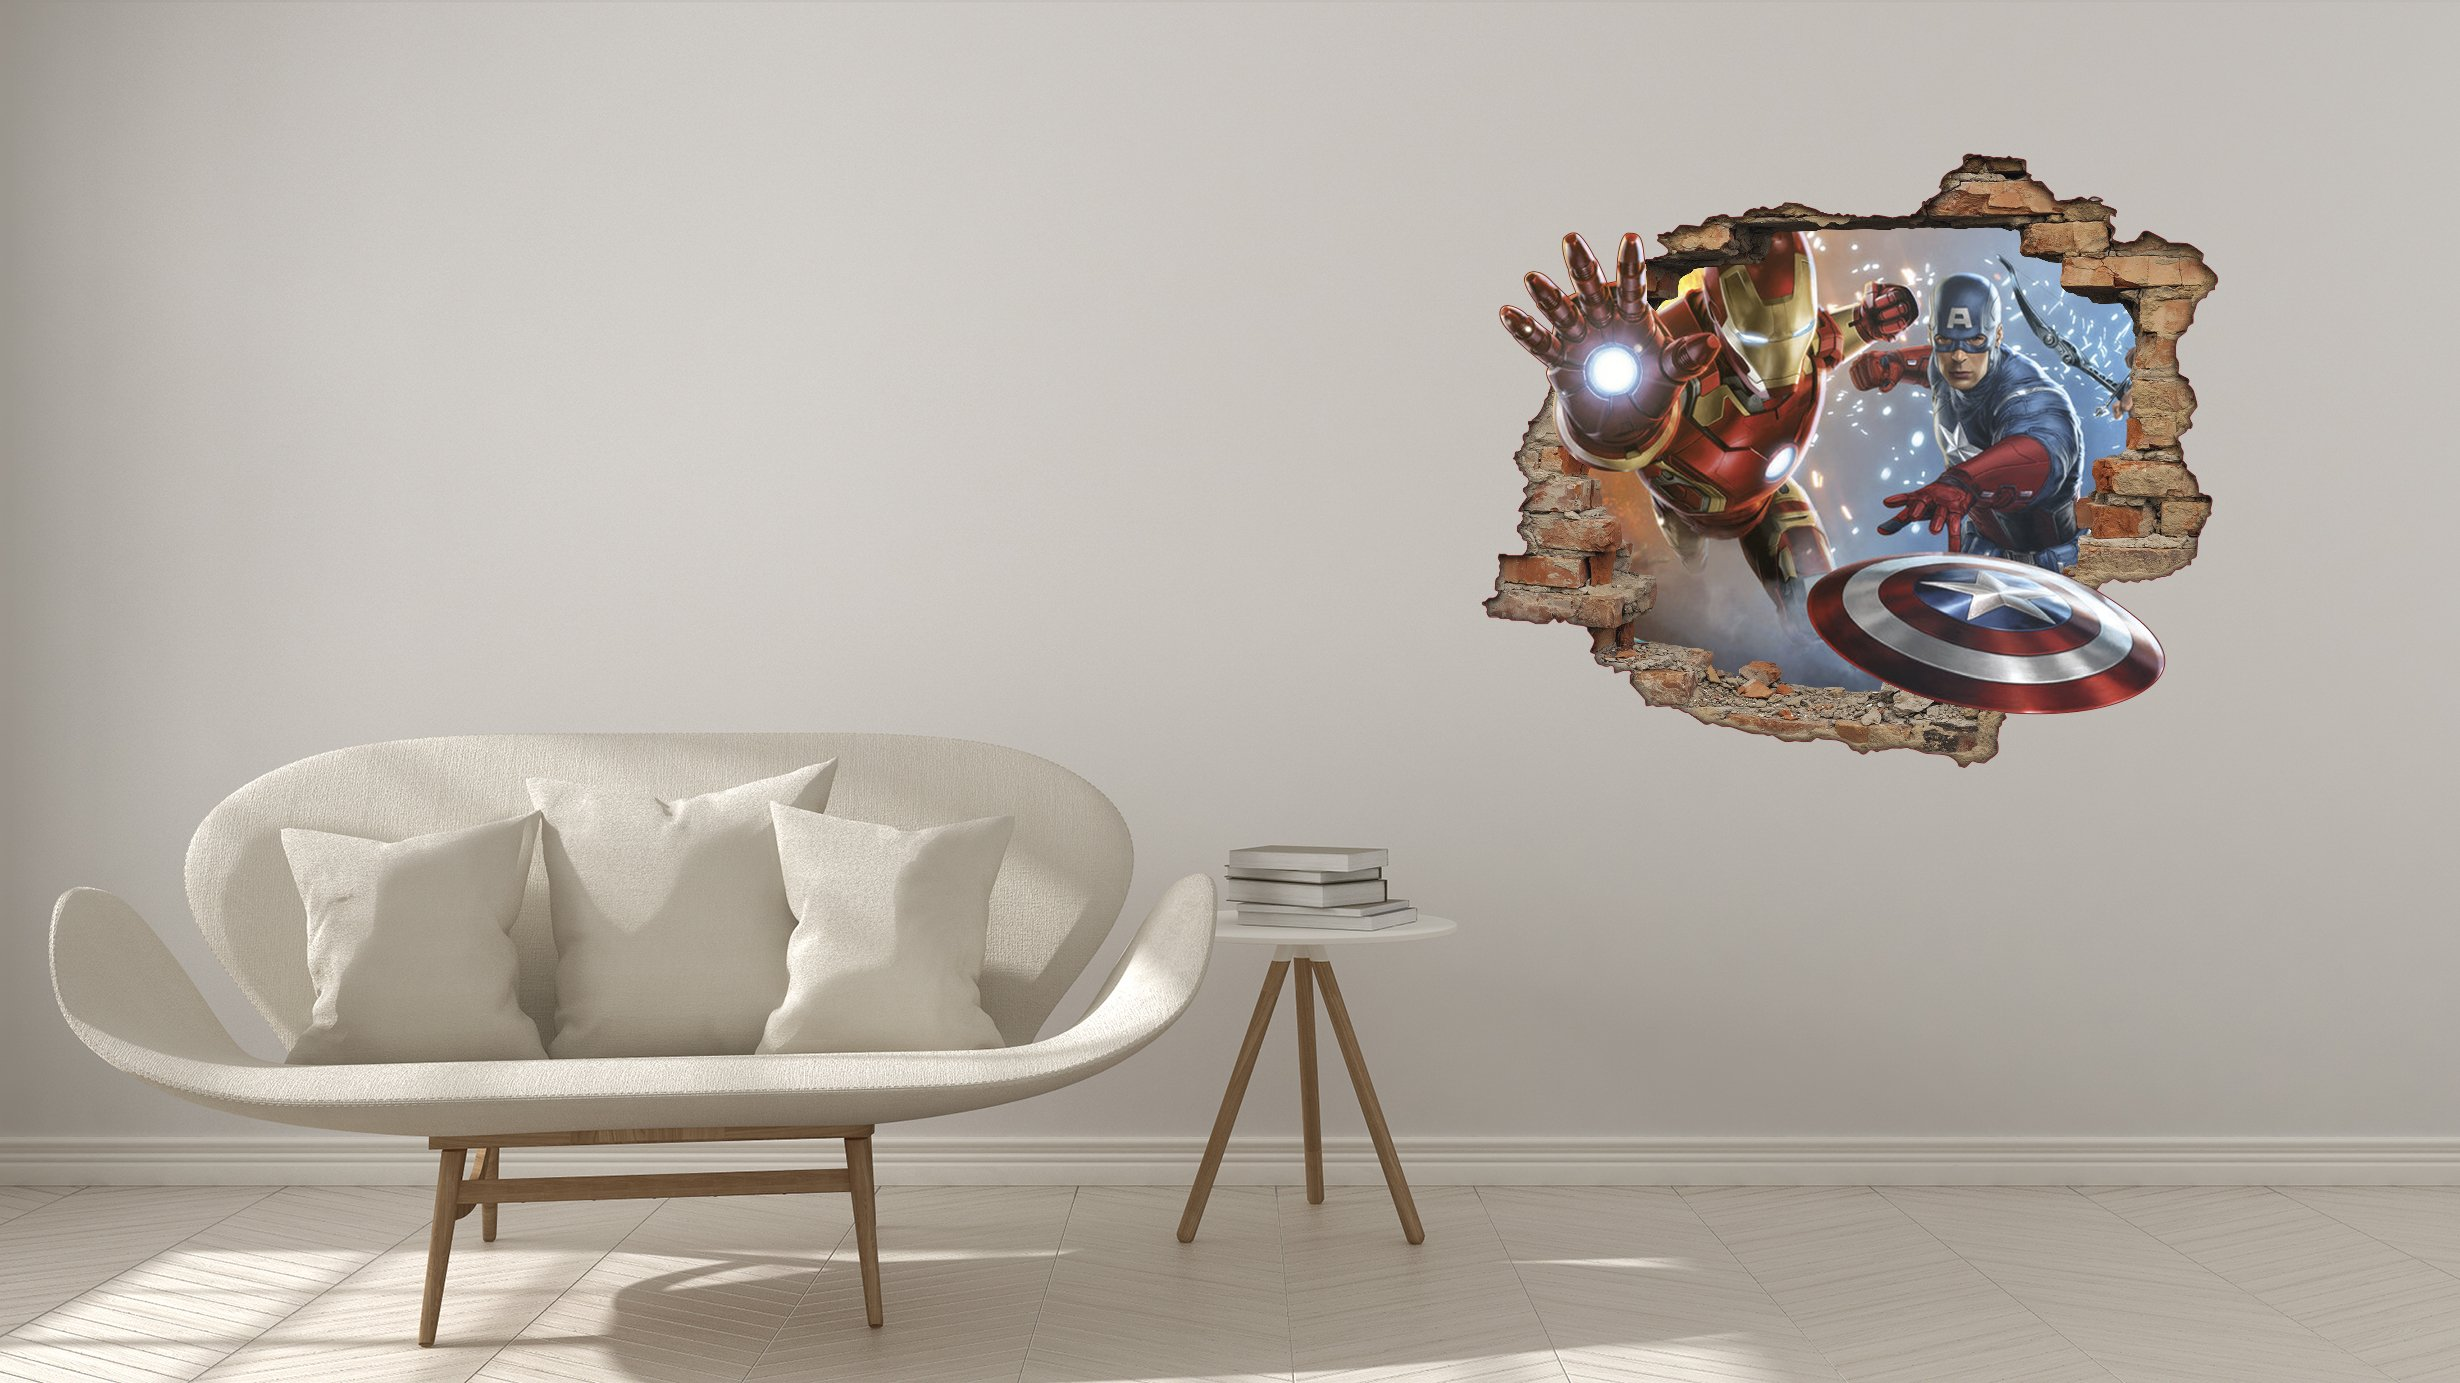 Iron Man and Captain America Super Hero 3D Effect - Brake Wall Effect 3D - Wall Decal For Room Boys Girls Unisex ((Wide 22''x18'' Height)) by Decalca (Image #1)